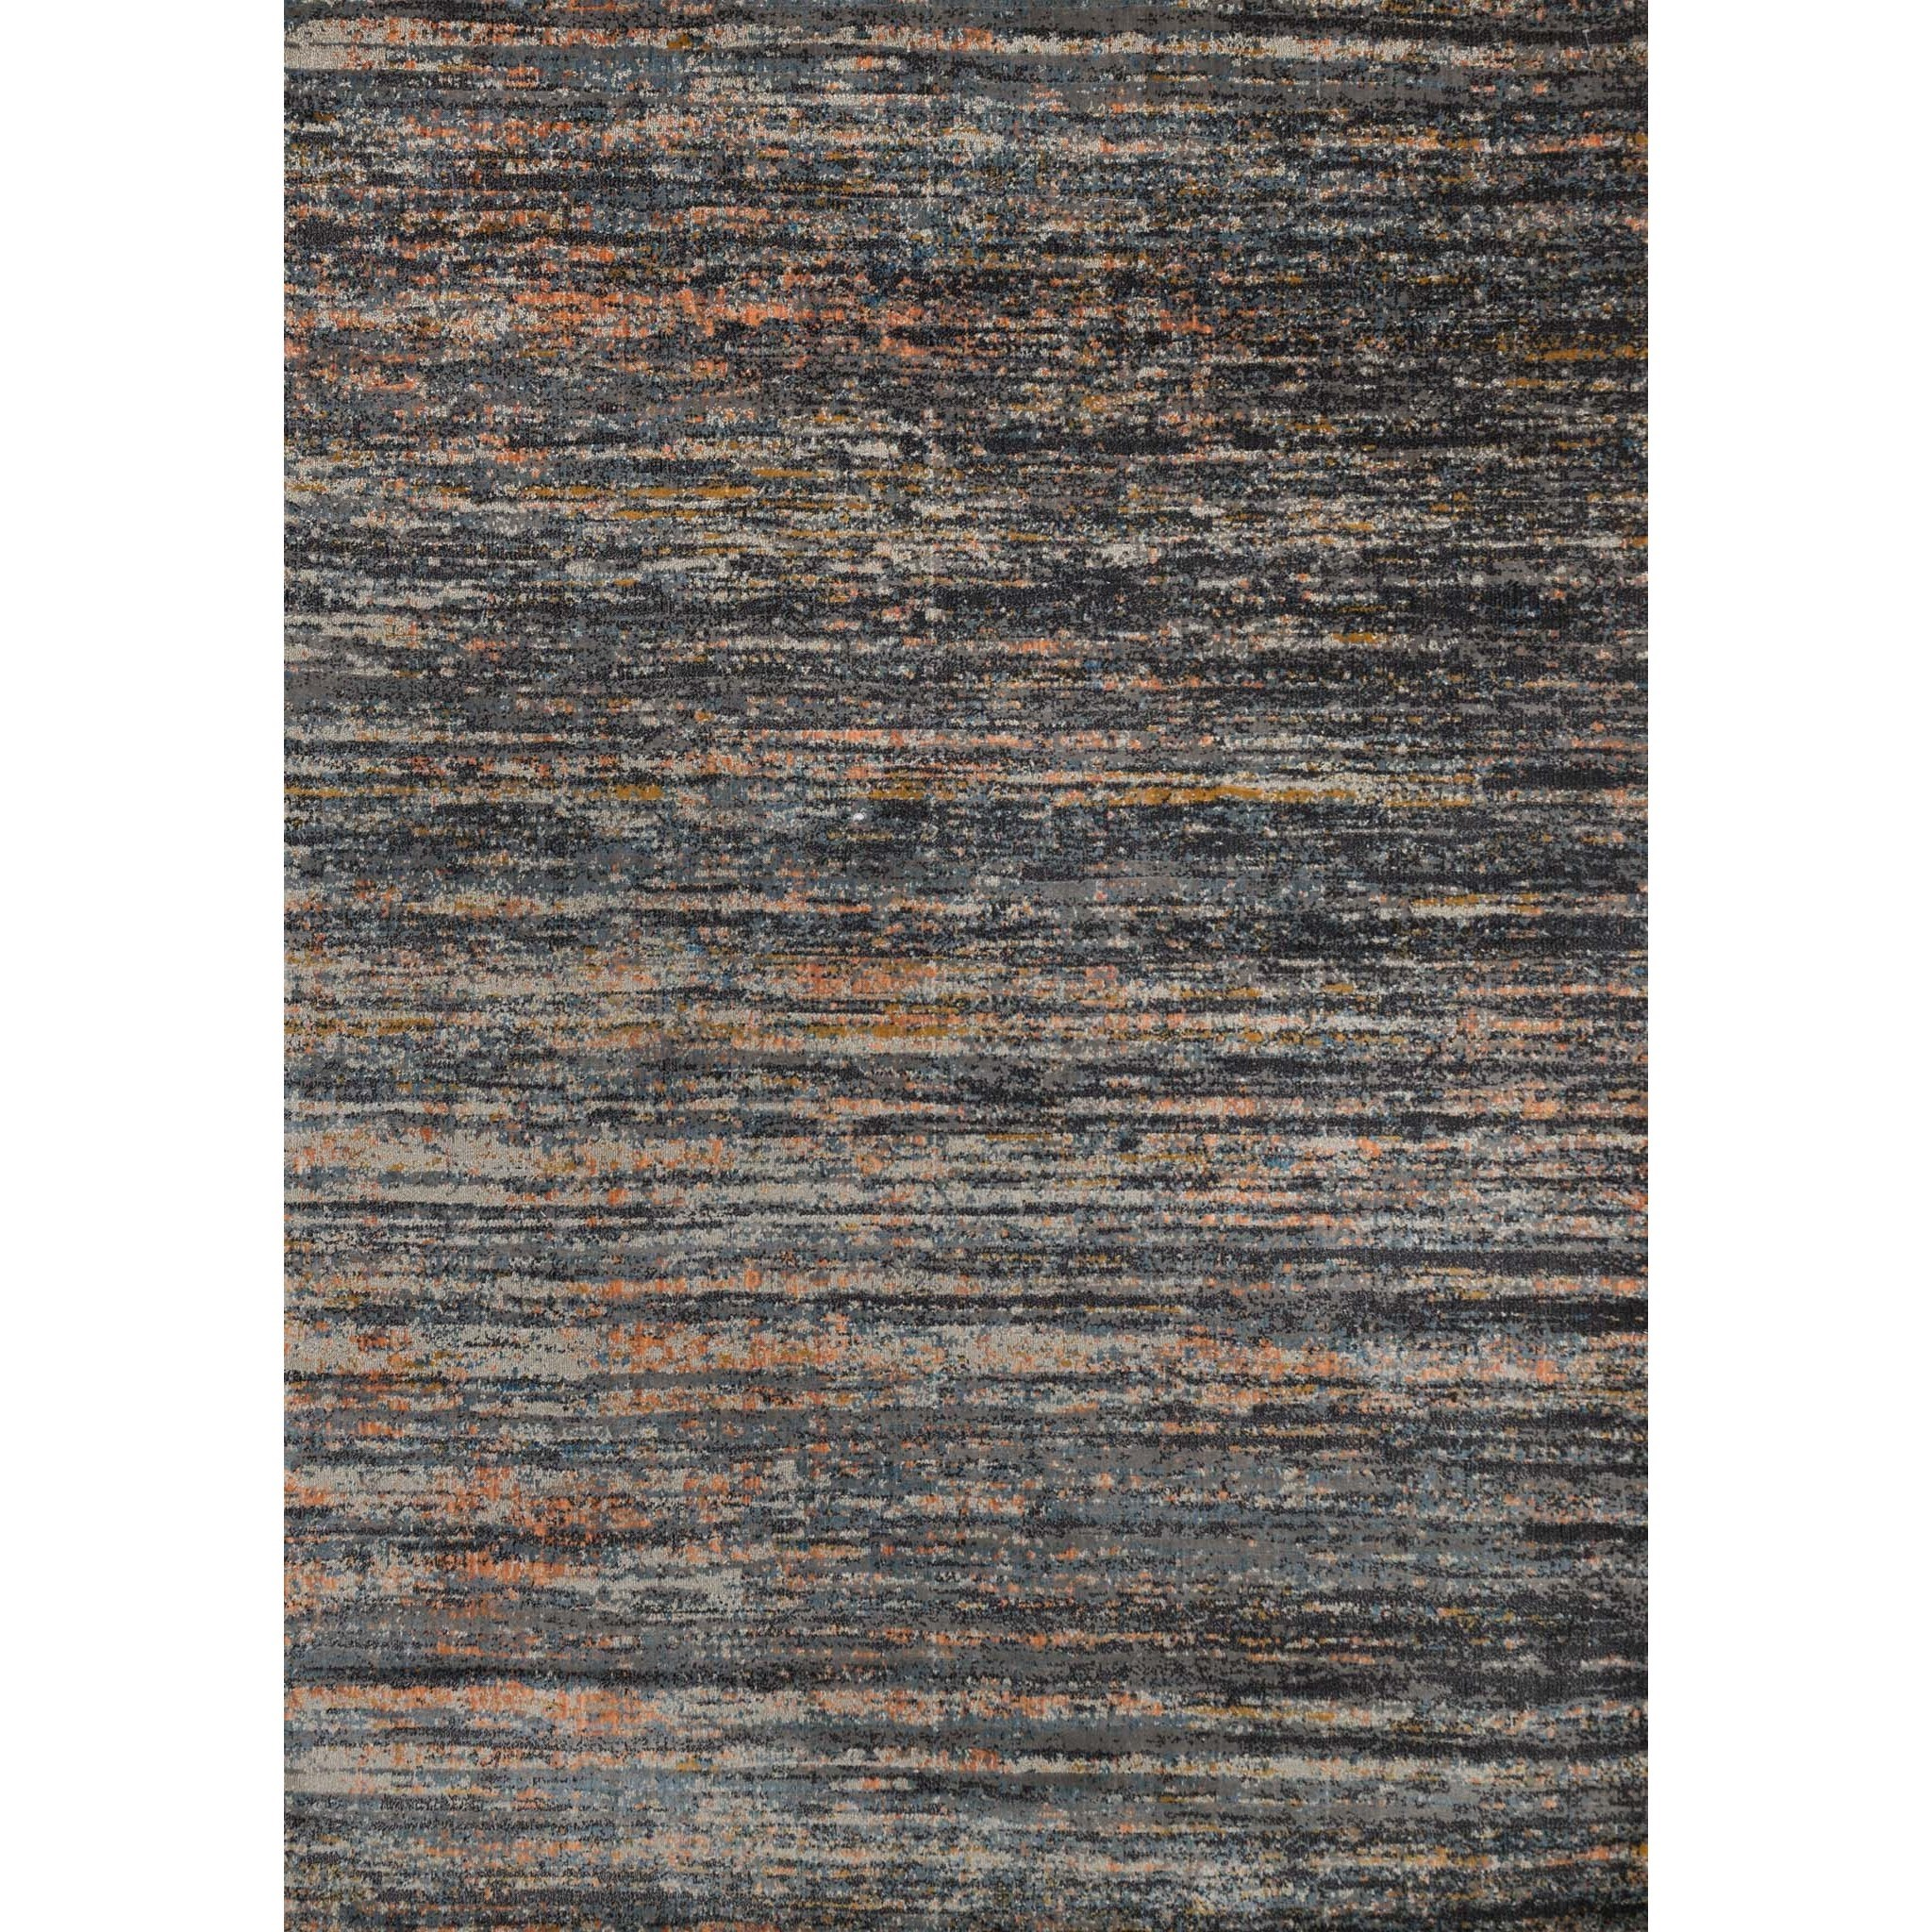 "Loloi Rugs DREAMSCAPE 1'-11"" X 3' Rectangle Rug - Item Number: DREMDM-12SLOR1B30"